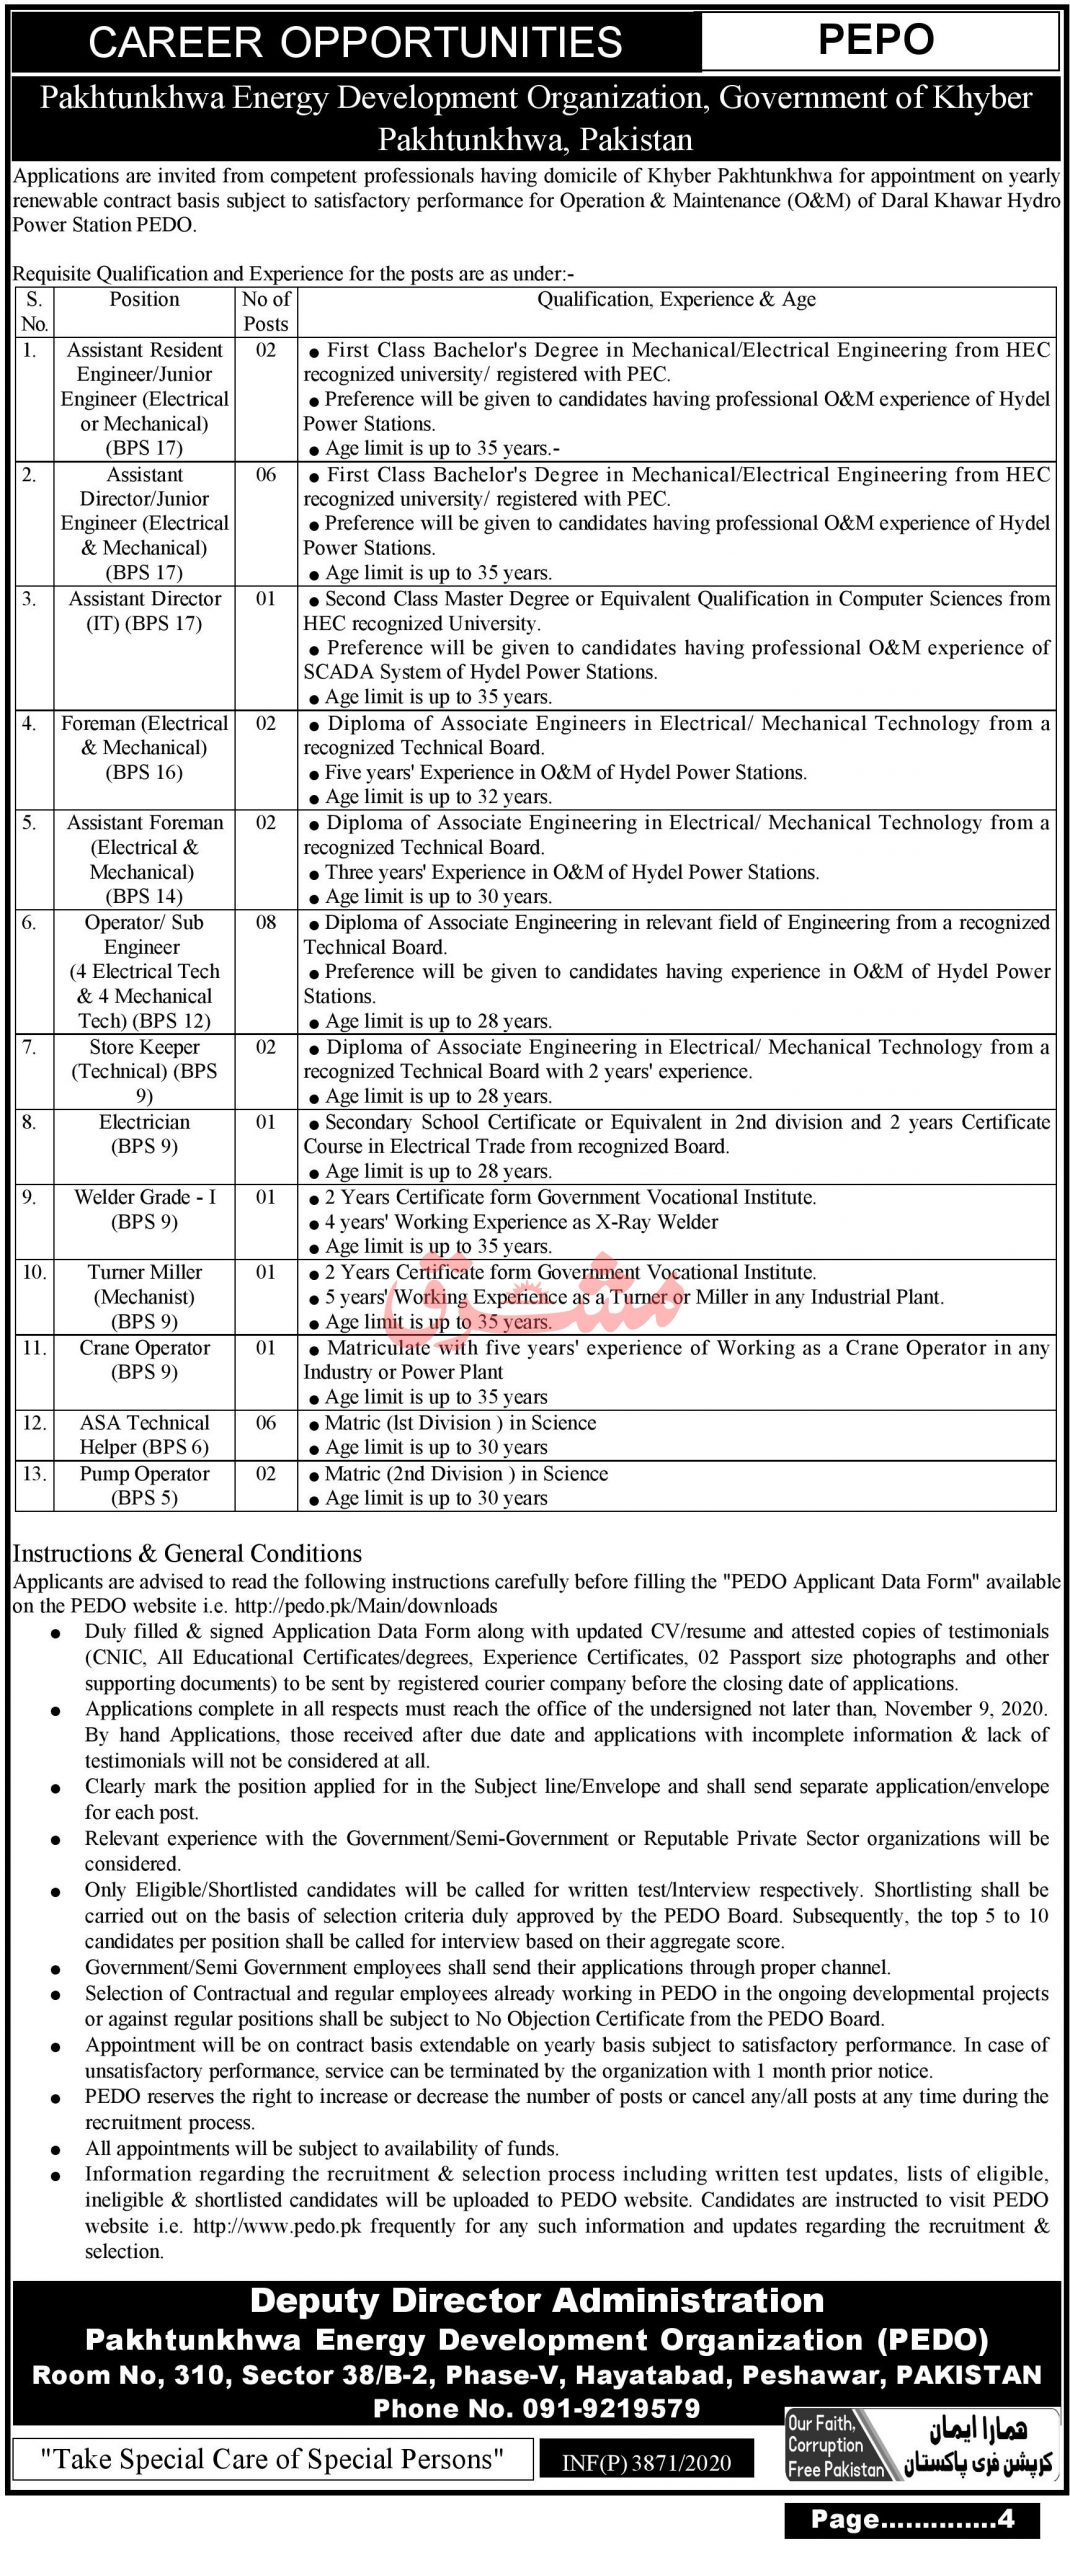 Paktunkhwa Energy Development Organization PEDO Government of Khyber Pakhtunkhwa Jobs October 2020